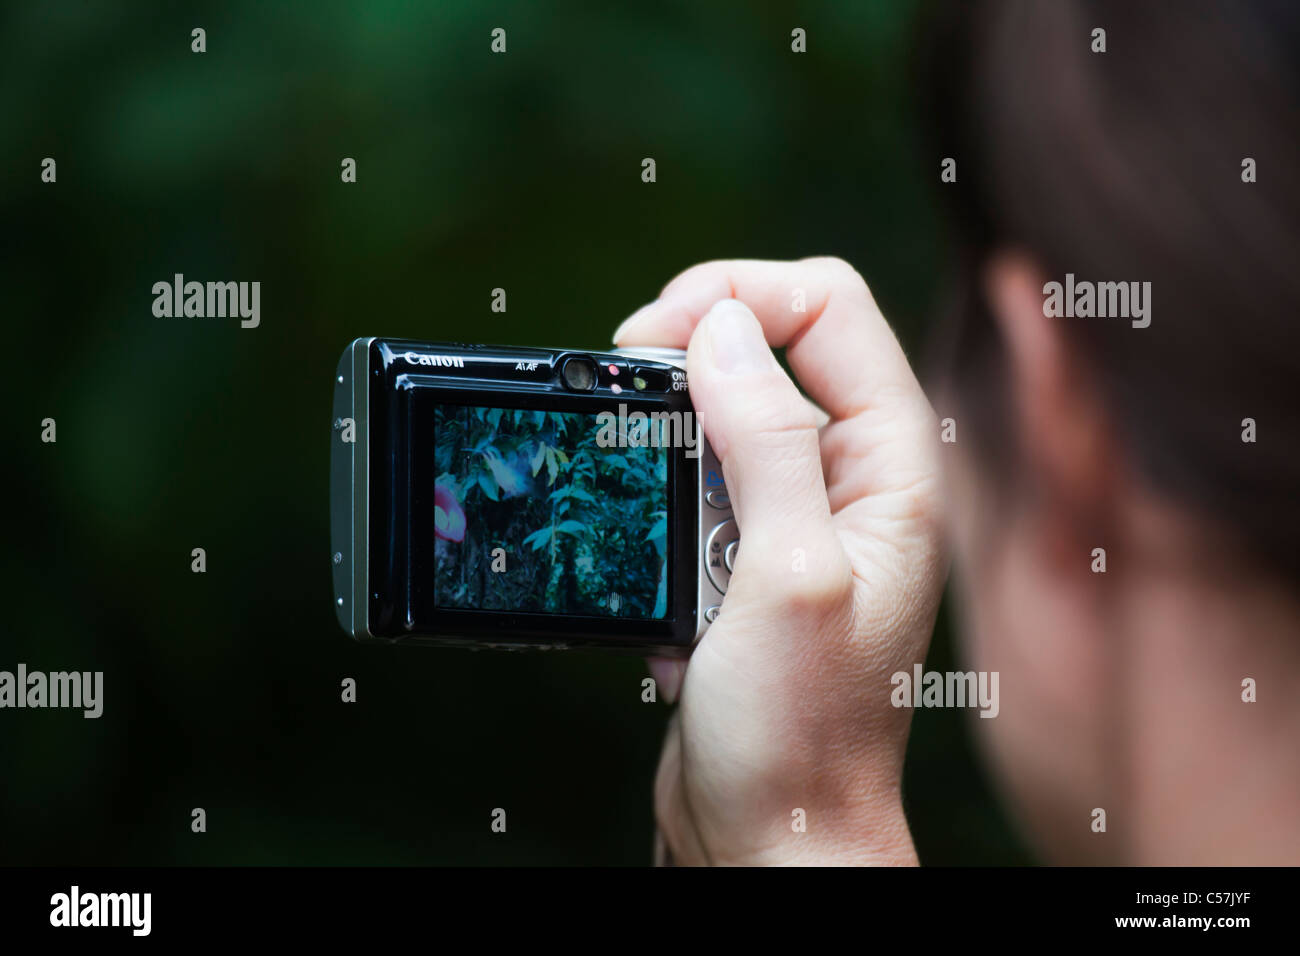 Ecotourism ecotourist in tropical rainforest with digital compact camera photographing colibris - Stock Image